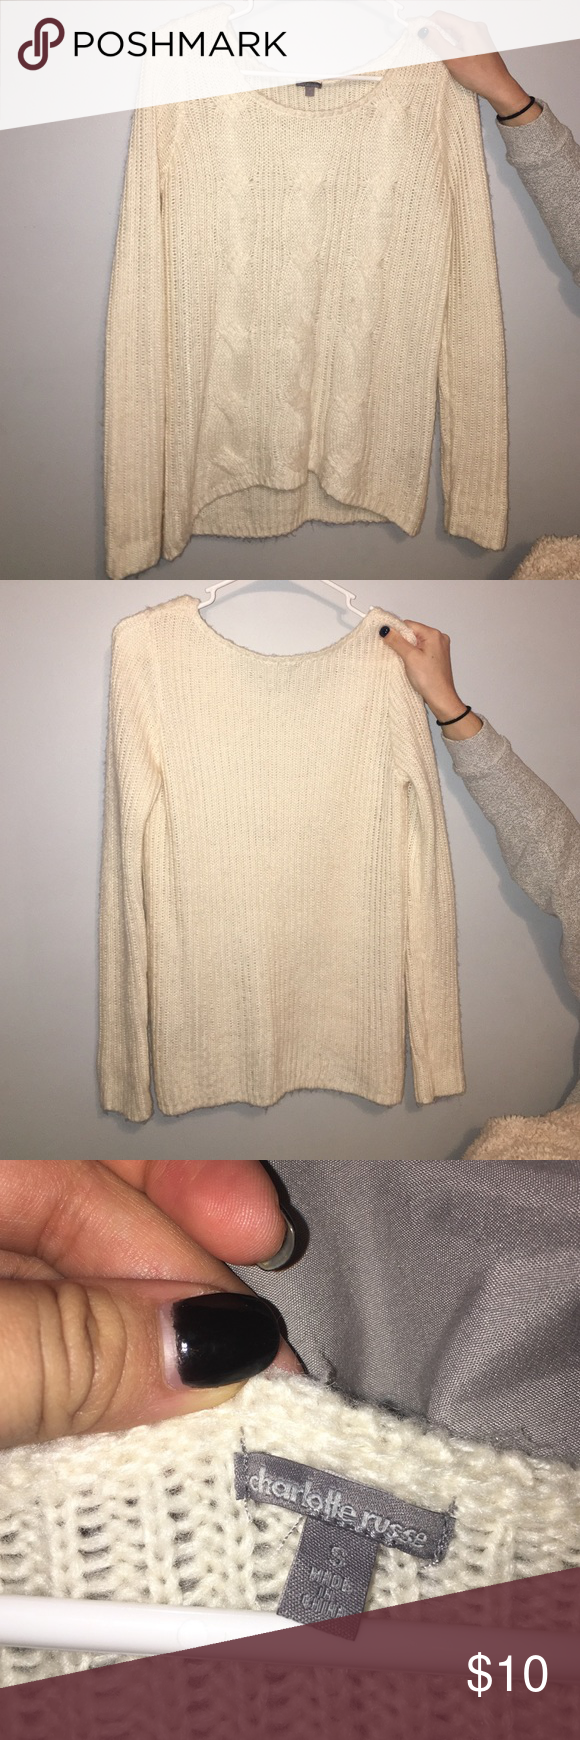 Cream cable knit sweater Worn only a few times ended up not fitting how I wanted! Charlotte Russe Sweaters Crew & Scoop Necks